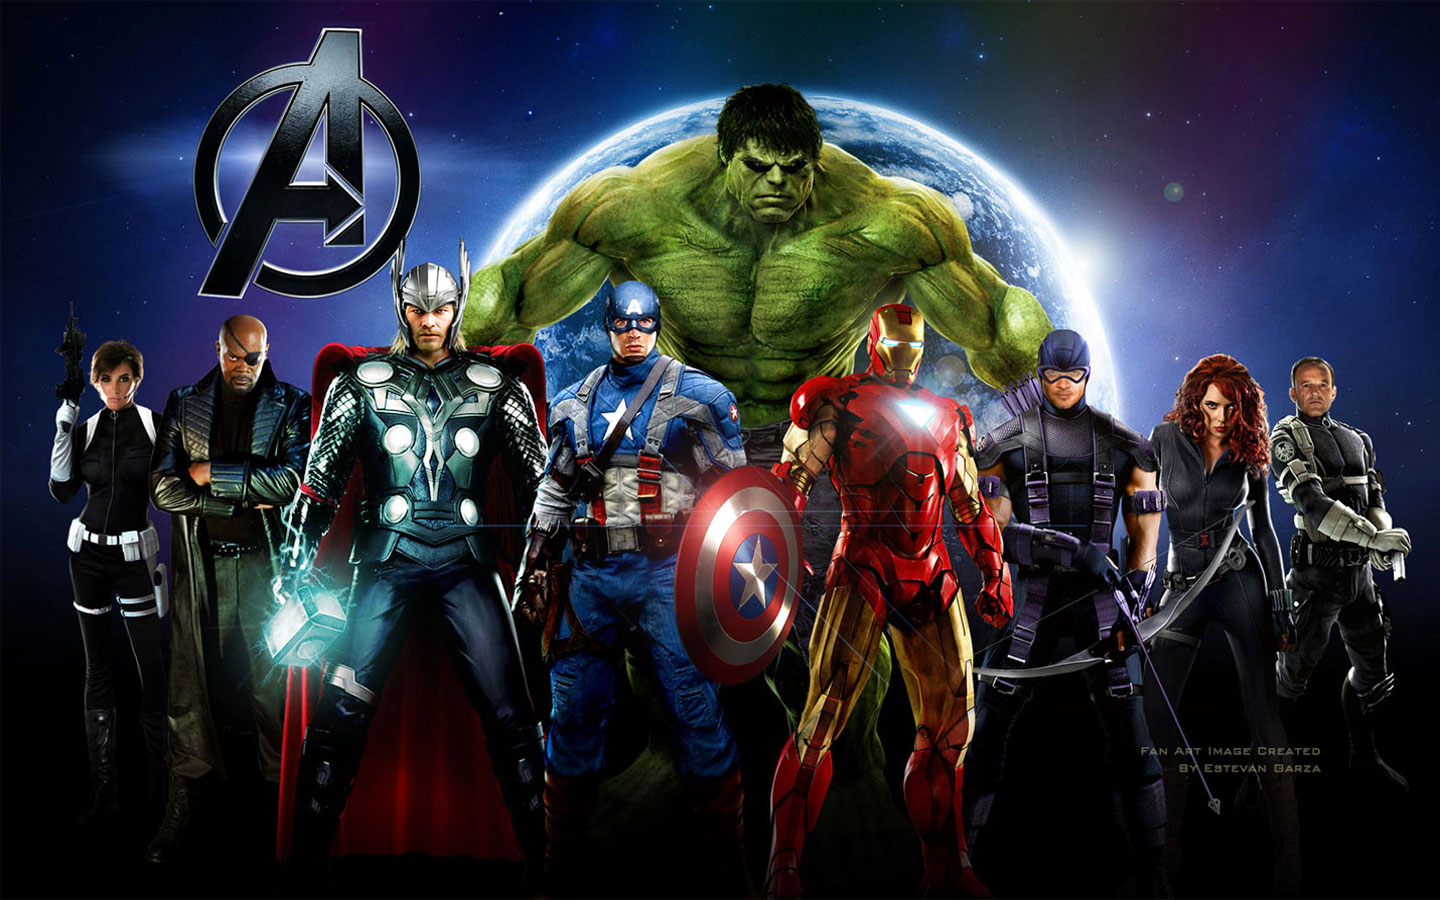 http://2.bp.blogspot.com/-Ph2flzqKN8A/TpSYlWQS0OI/AAAAAAAAAaY/waz3e370vjA/s1600/The-Avengers-Movie-Widescreen-Wallpaper-2.jpg